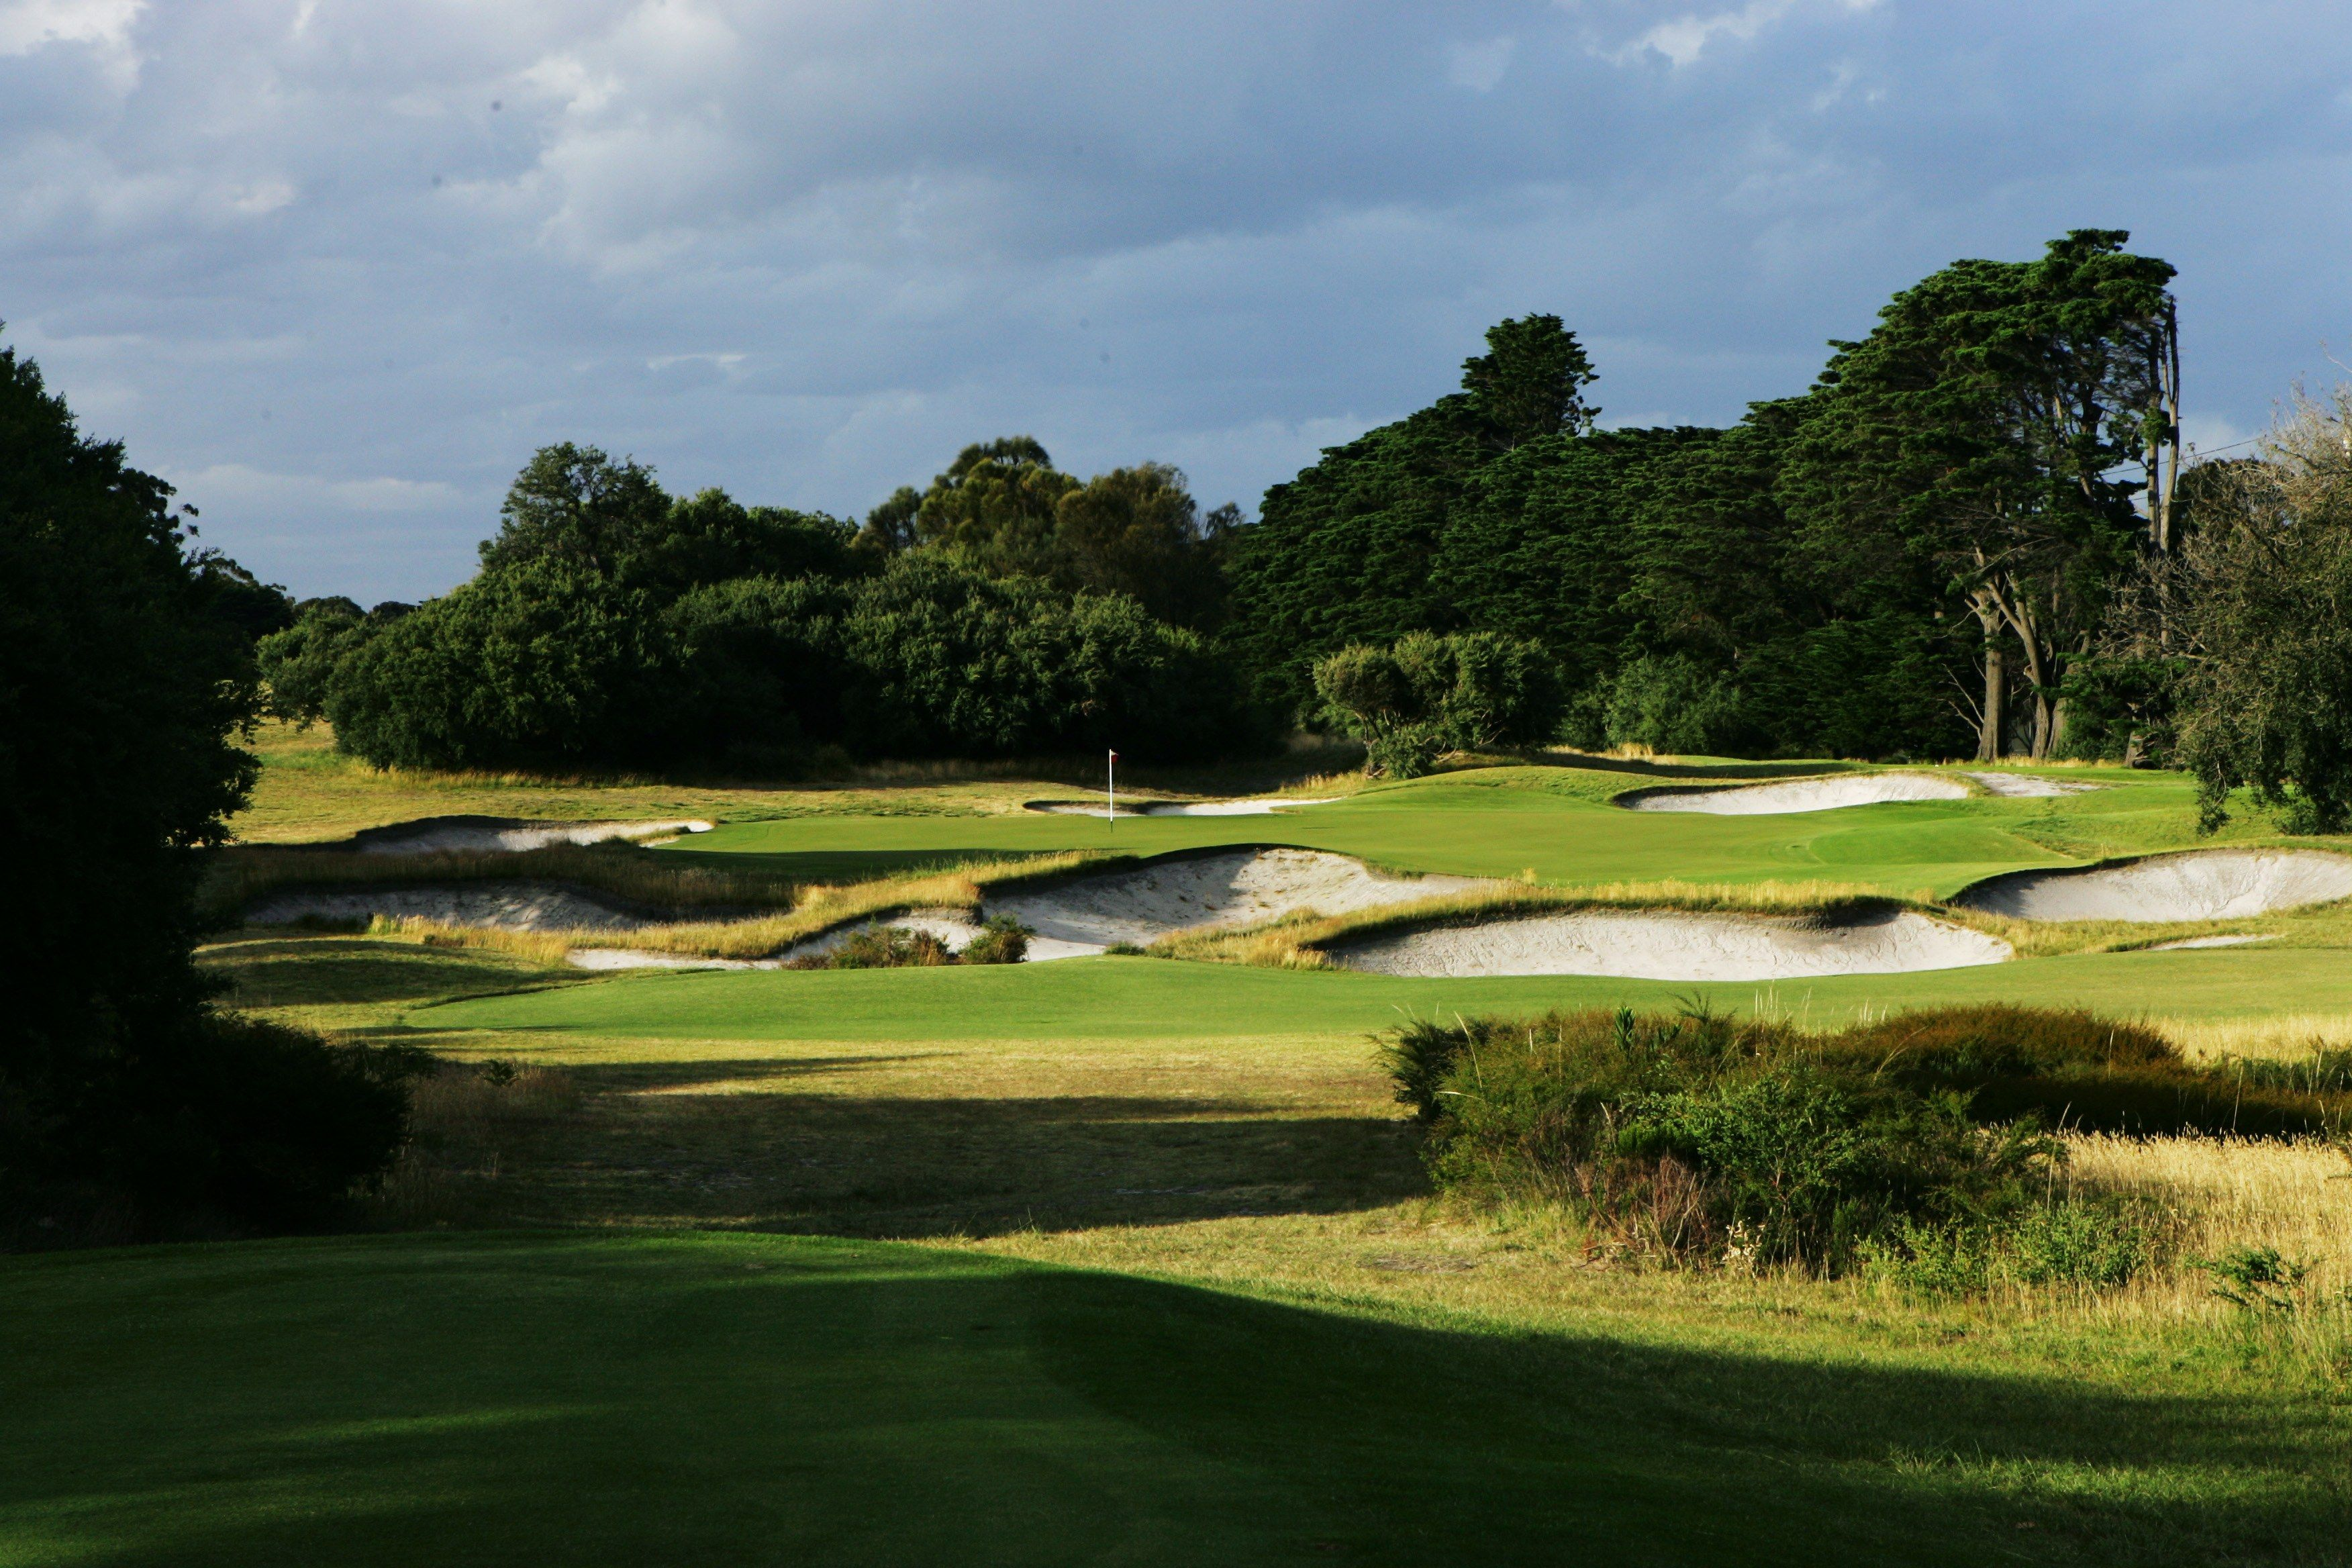 Royal melbourne to host 2019 presidents cup in mid